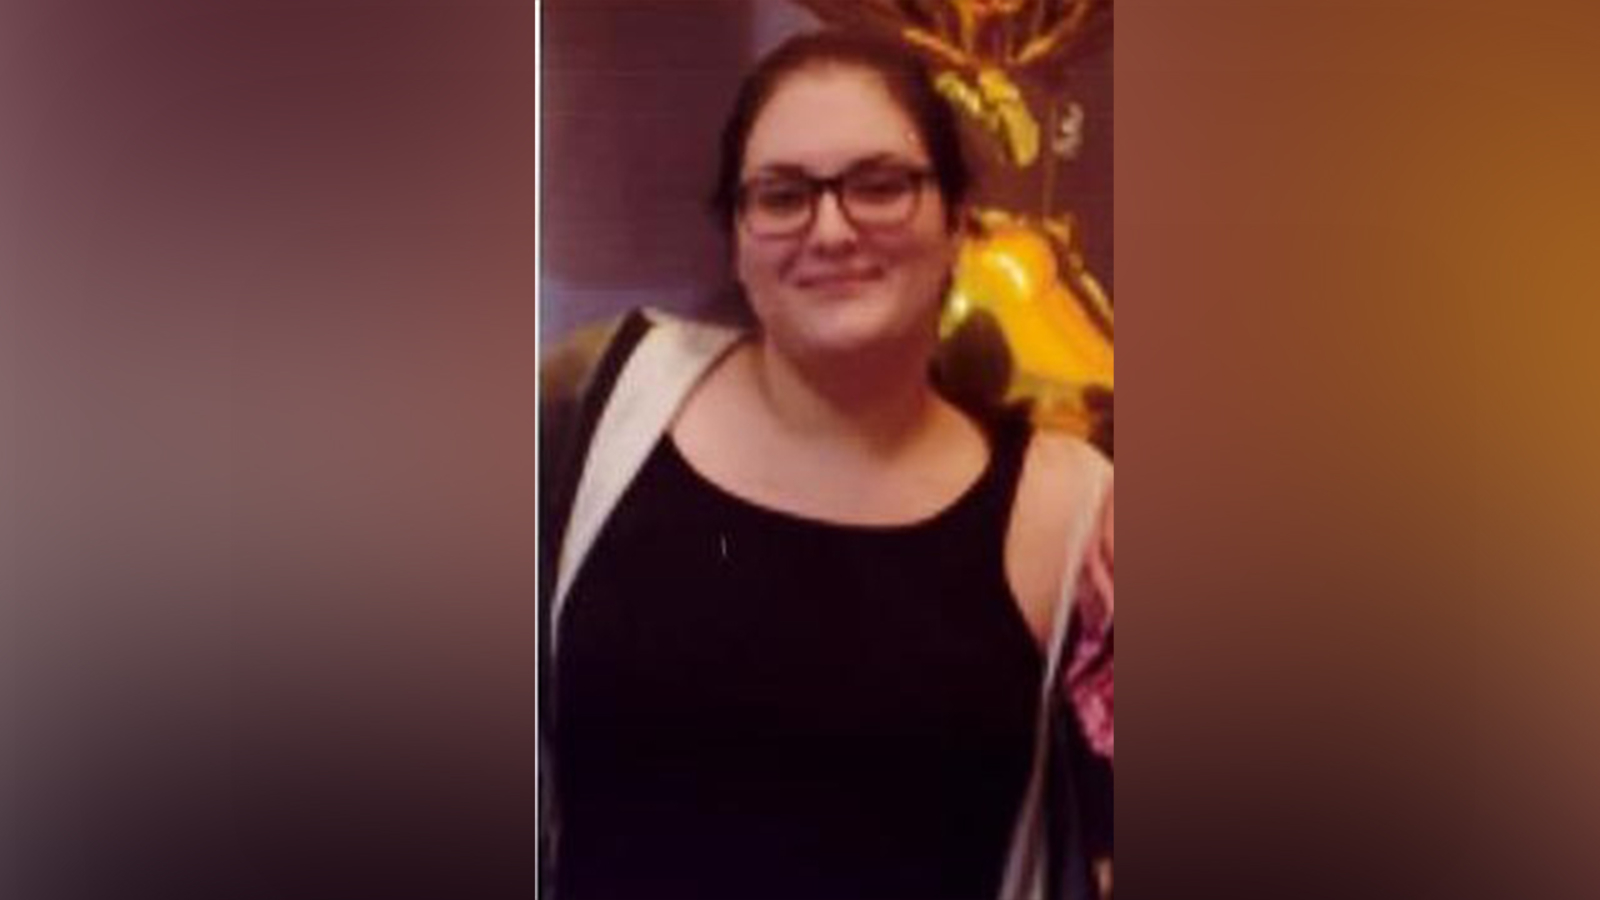 19-year-old woman reported missing on Long Island found dead